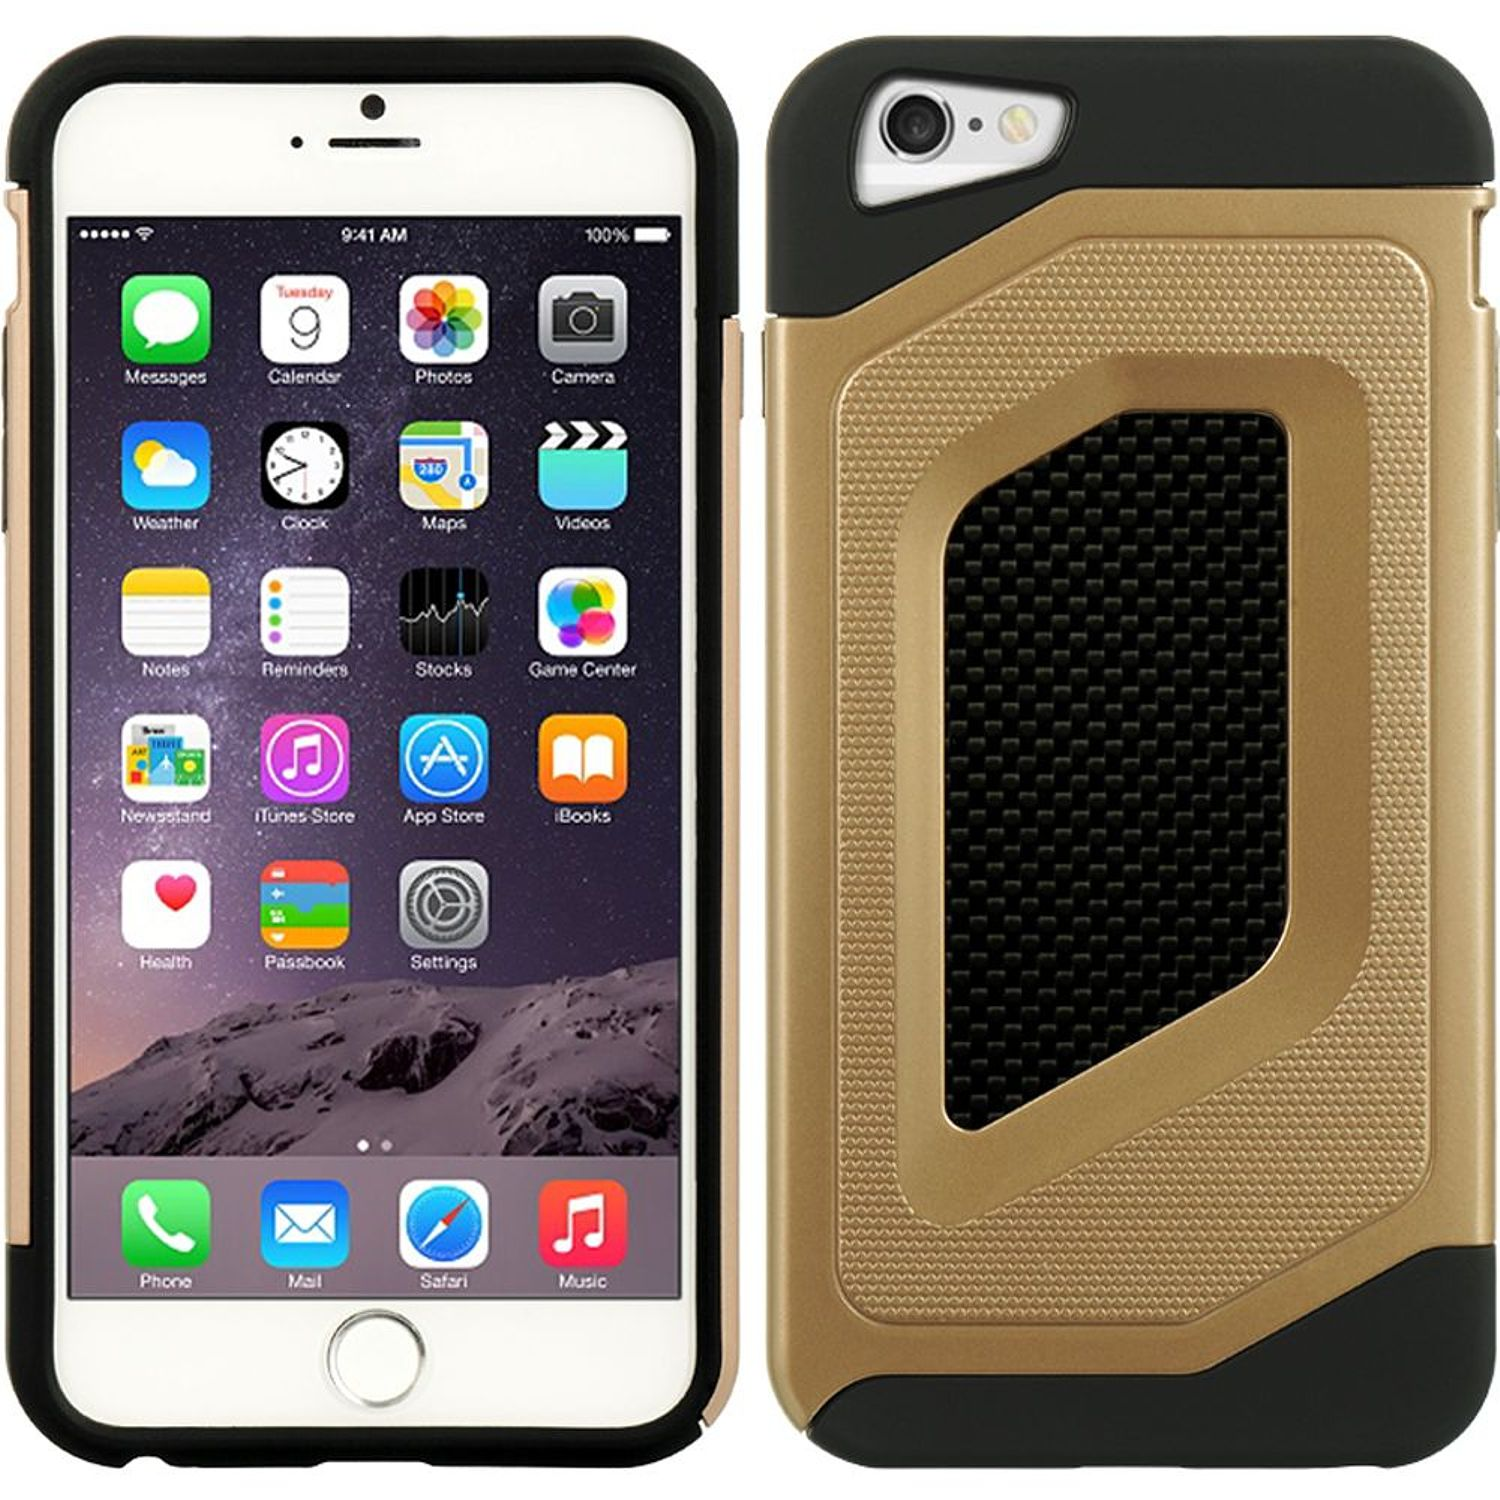 Apple iPhone 6 Plus/6s Plus Case, by DreamWireless Dual Layer Hybrid Hard Plastic/Soft TPU Rubber Case Cover For Apple iPhone 6 Plus/6s Plus, Black/Gold